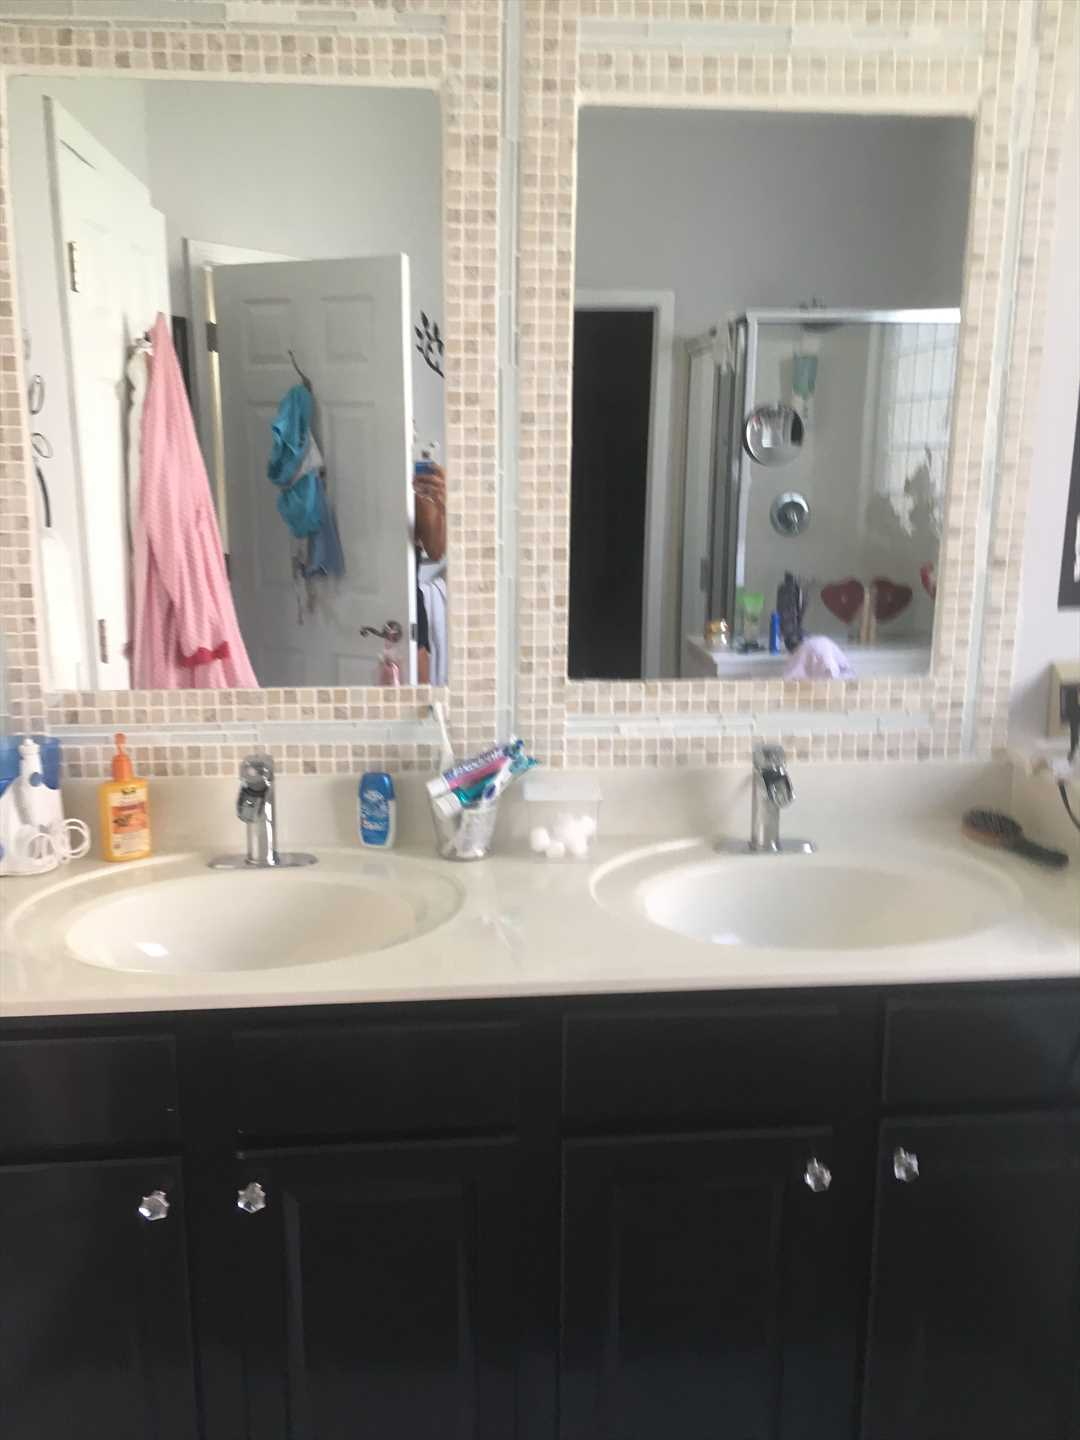 This is the master bathroom with double sinks, a garden tub